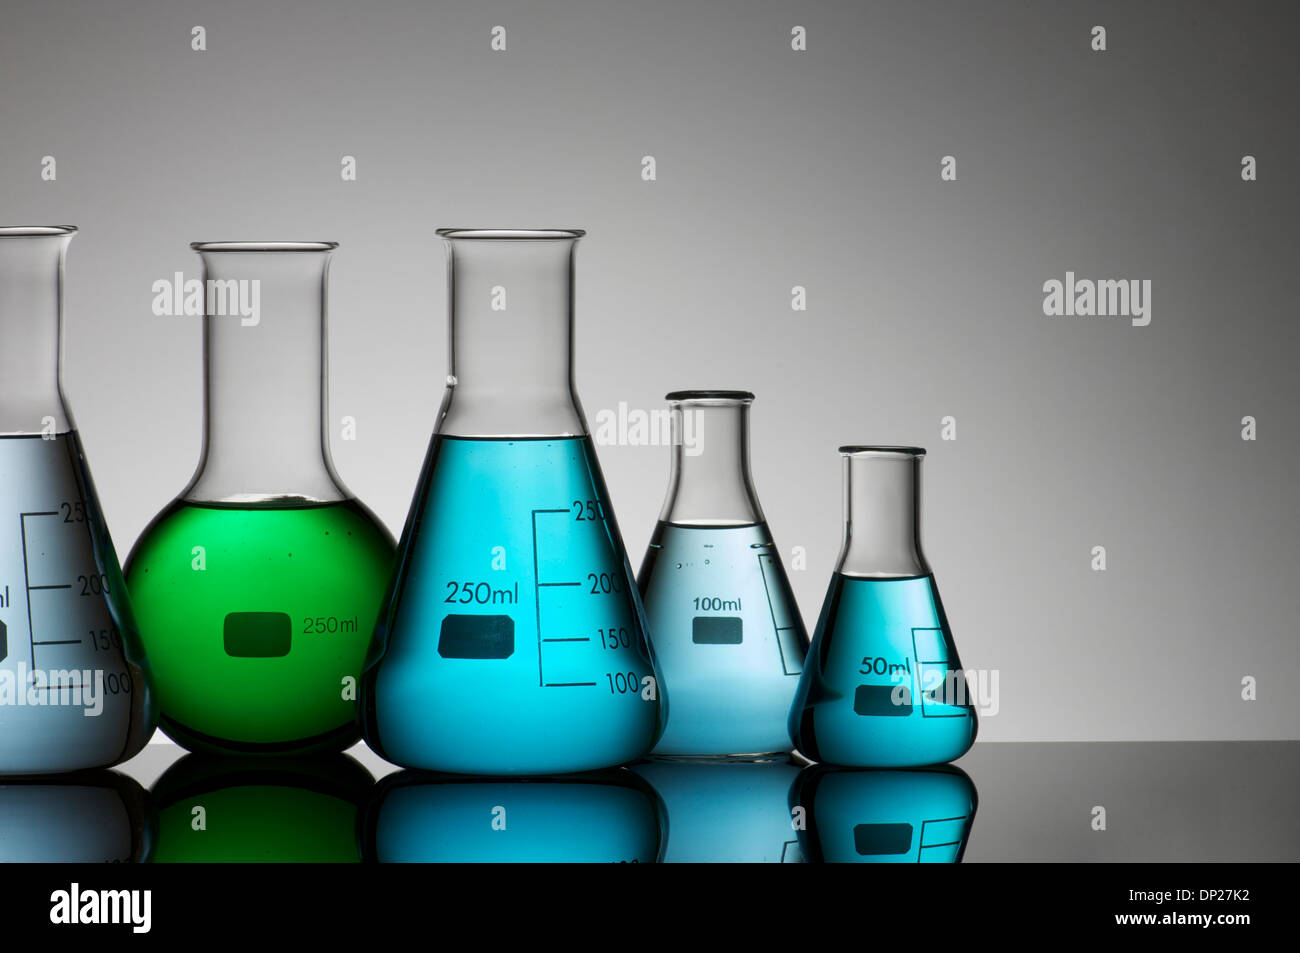 laboratory flasks with brightly colored liquid inside - Stock Image